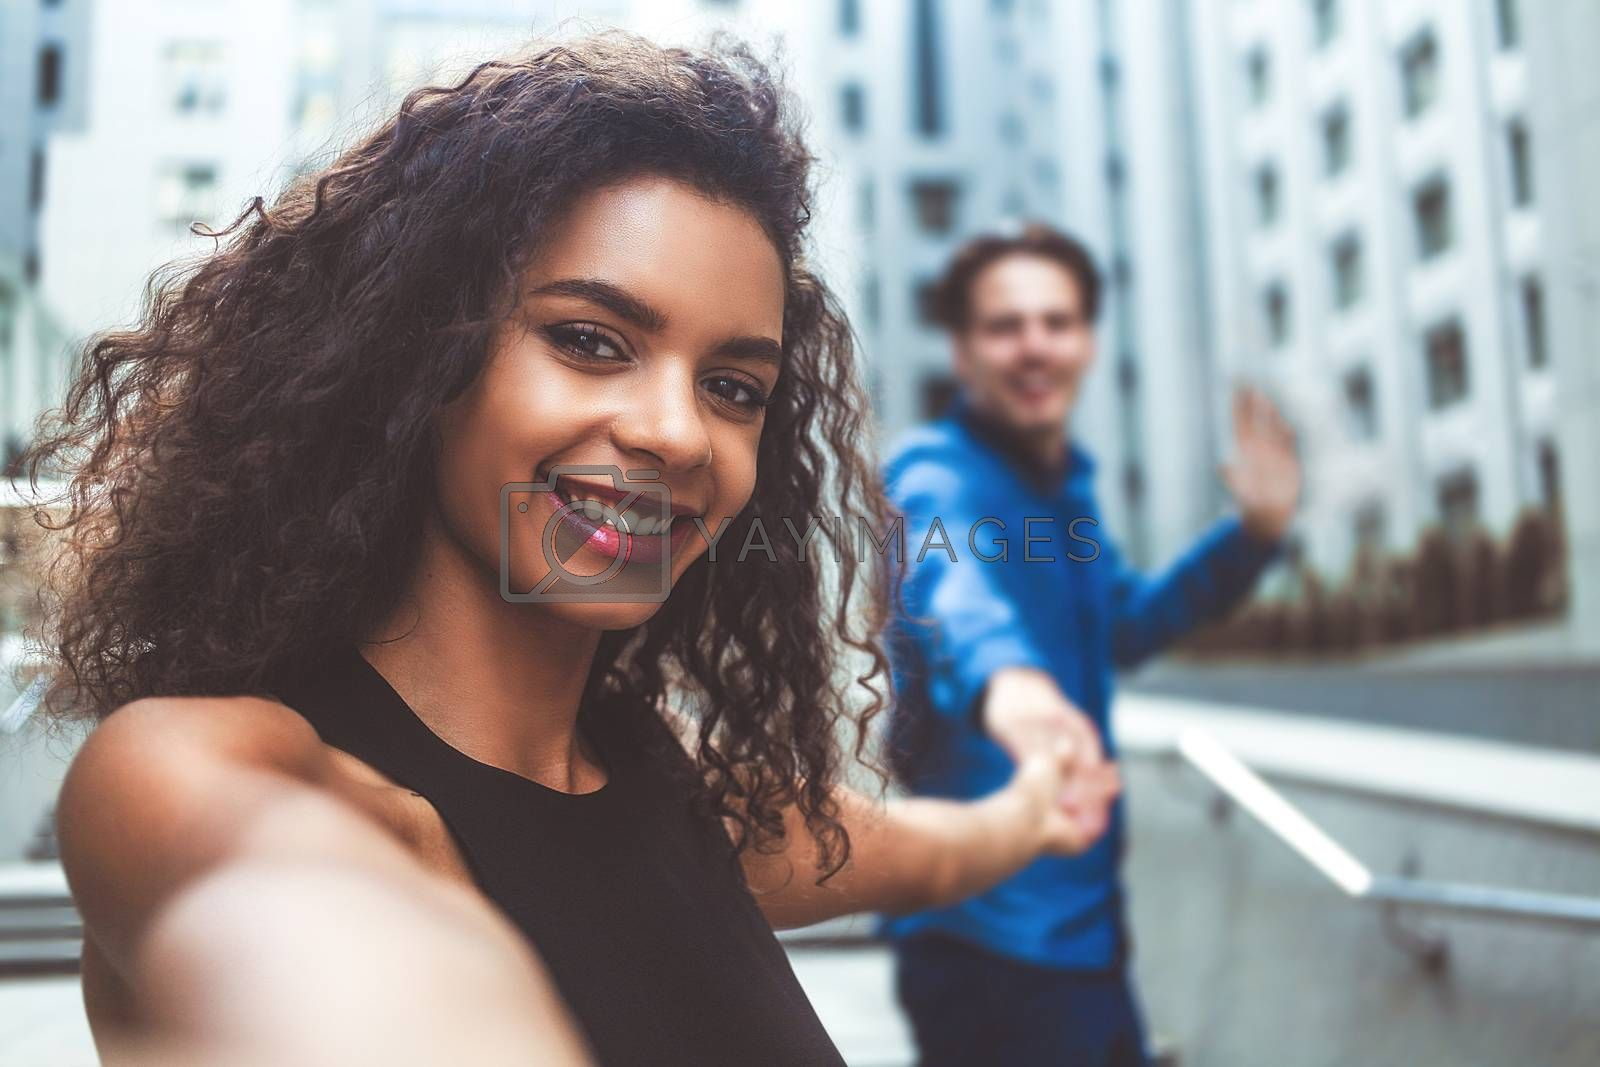 Outdoor portrait beautiful happy afroamerican woman taking selfie photograph smiling laughing with perfect teeth at street.